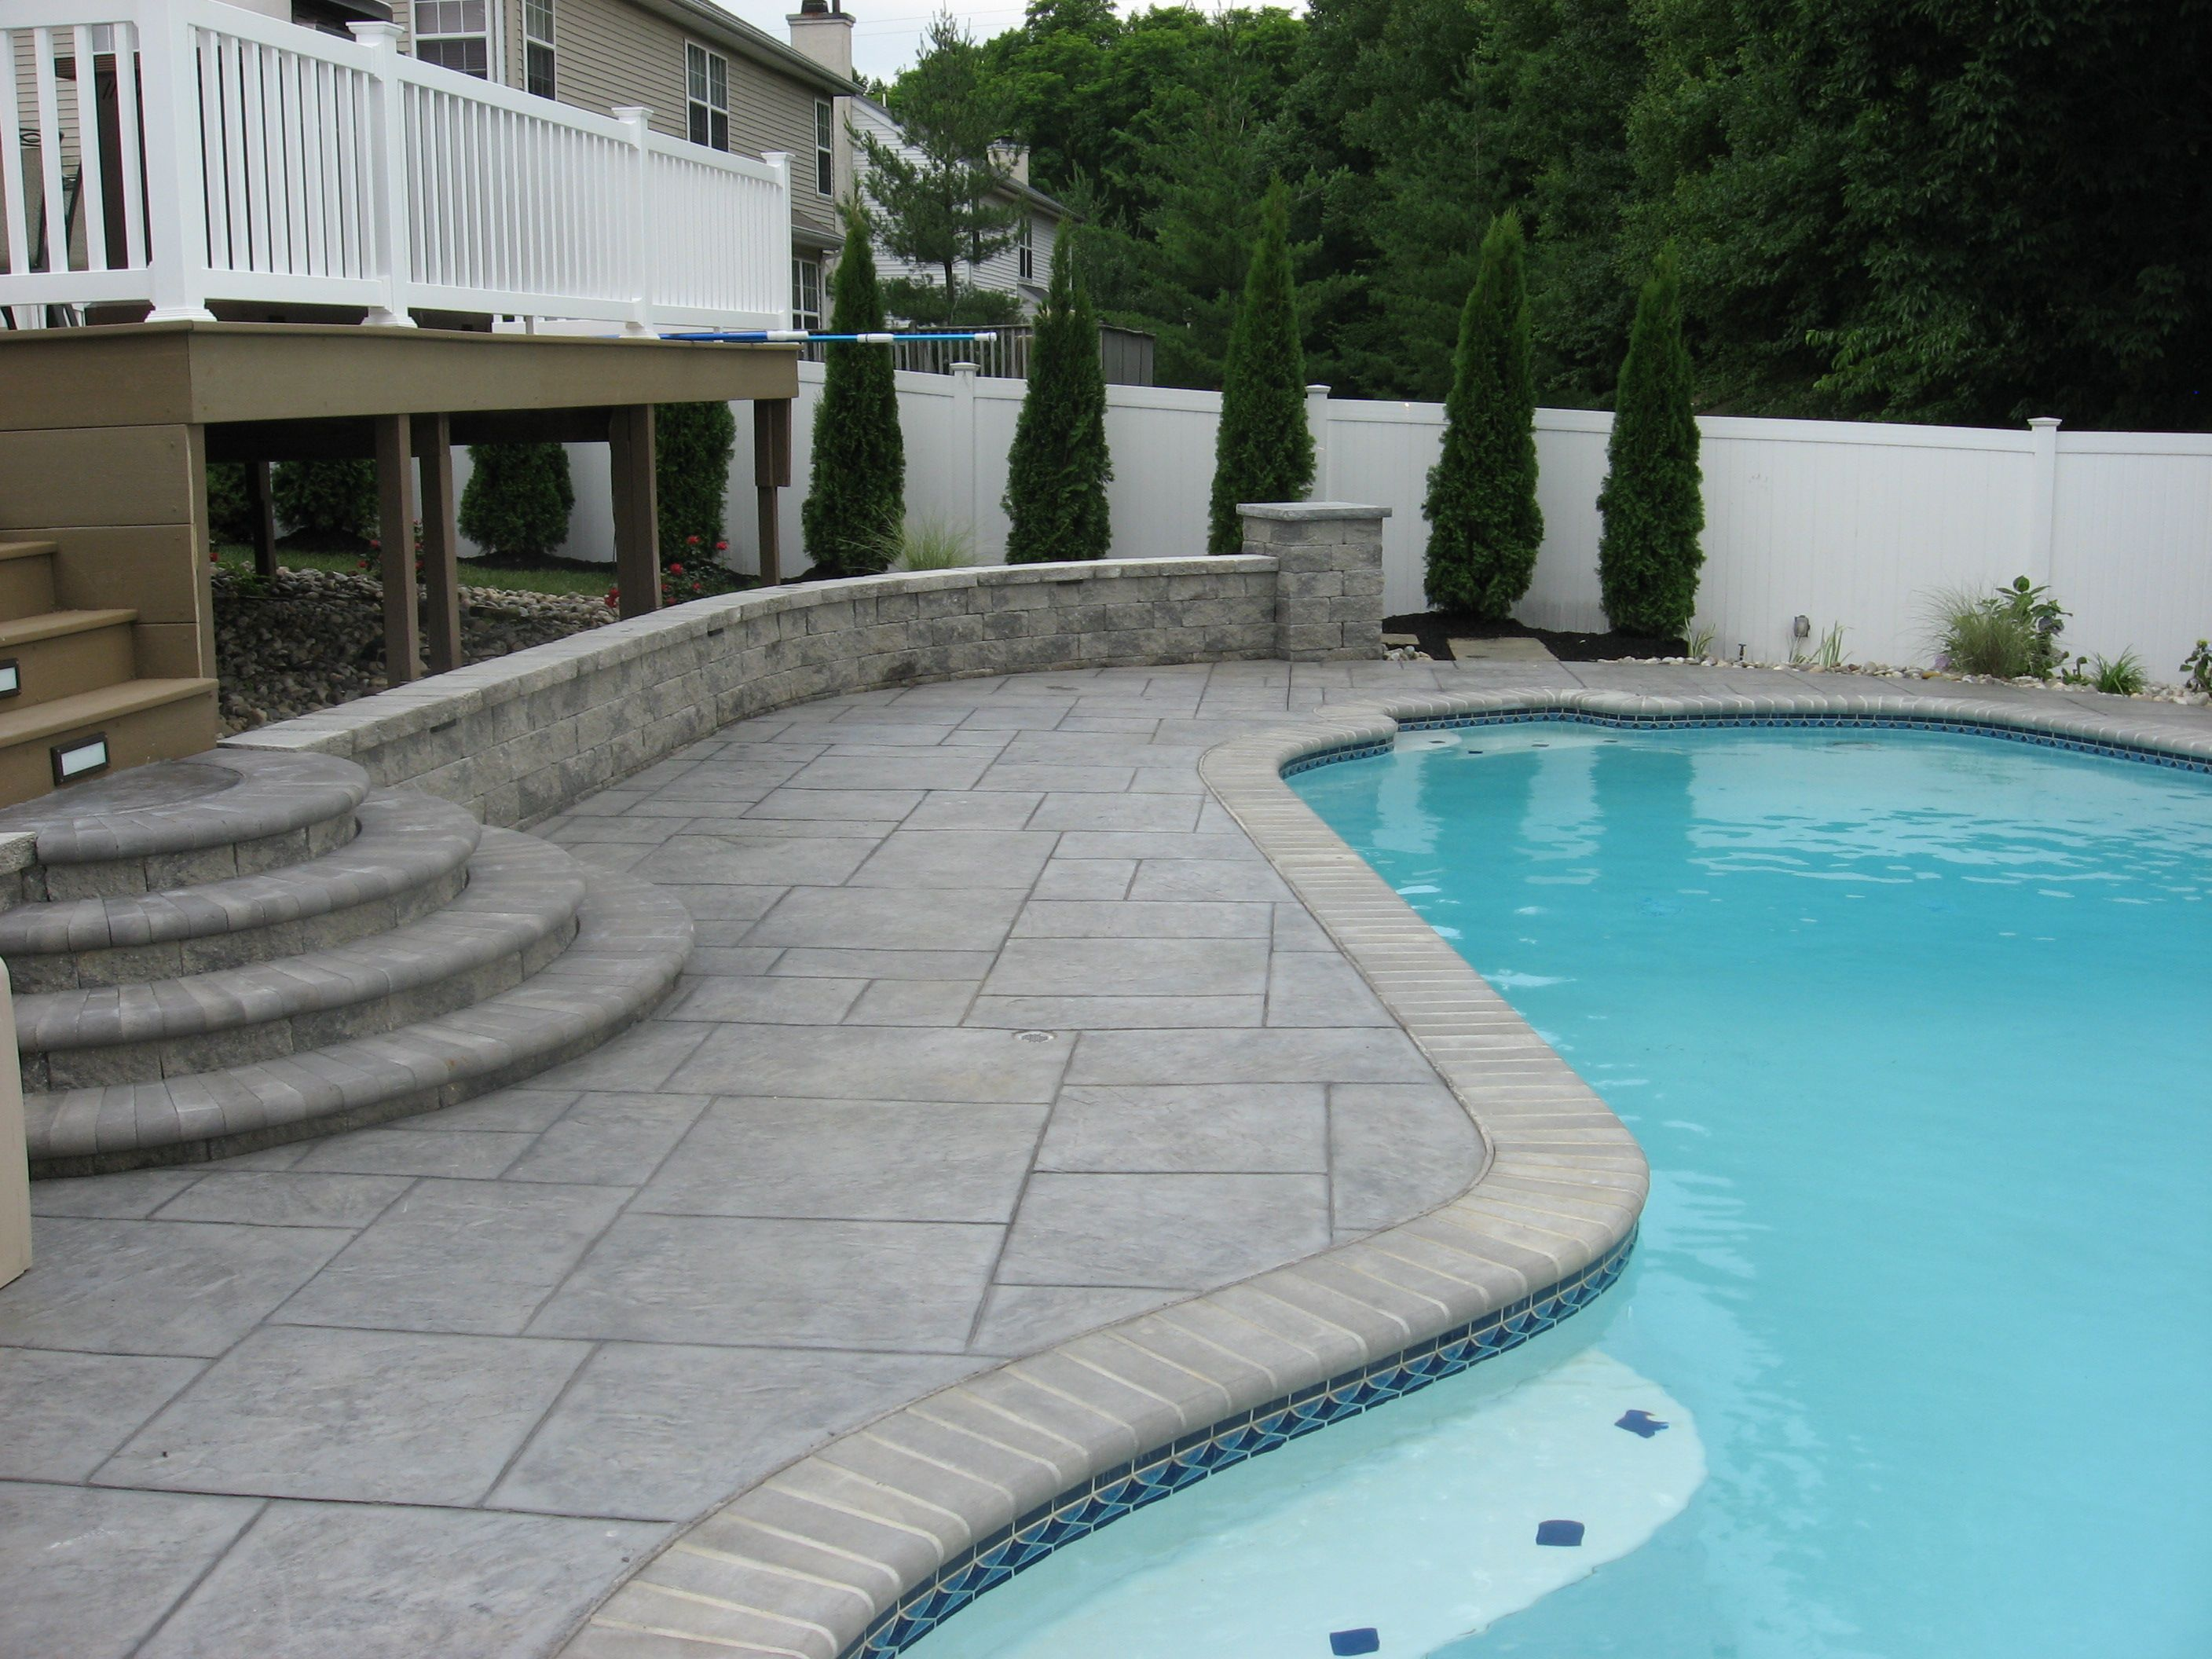 Stamped Concrete Design Ideas stamped concrete patio Stamped Concrete Patios Around A Pool Pattern Concrete For Pools